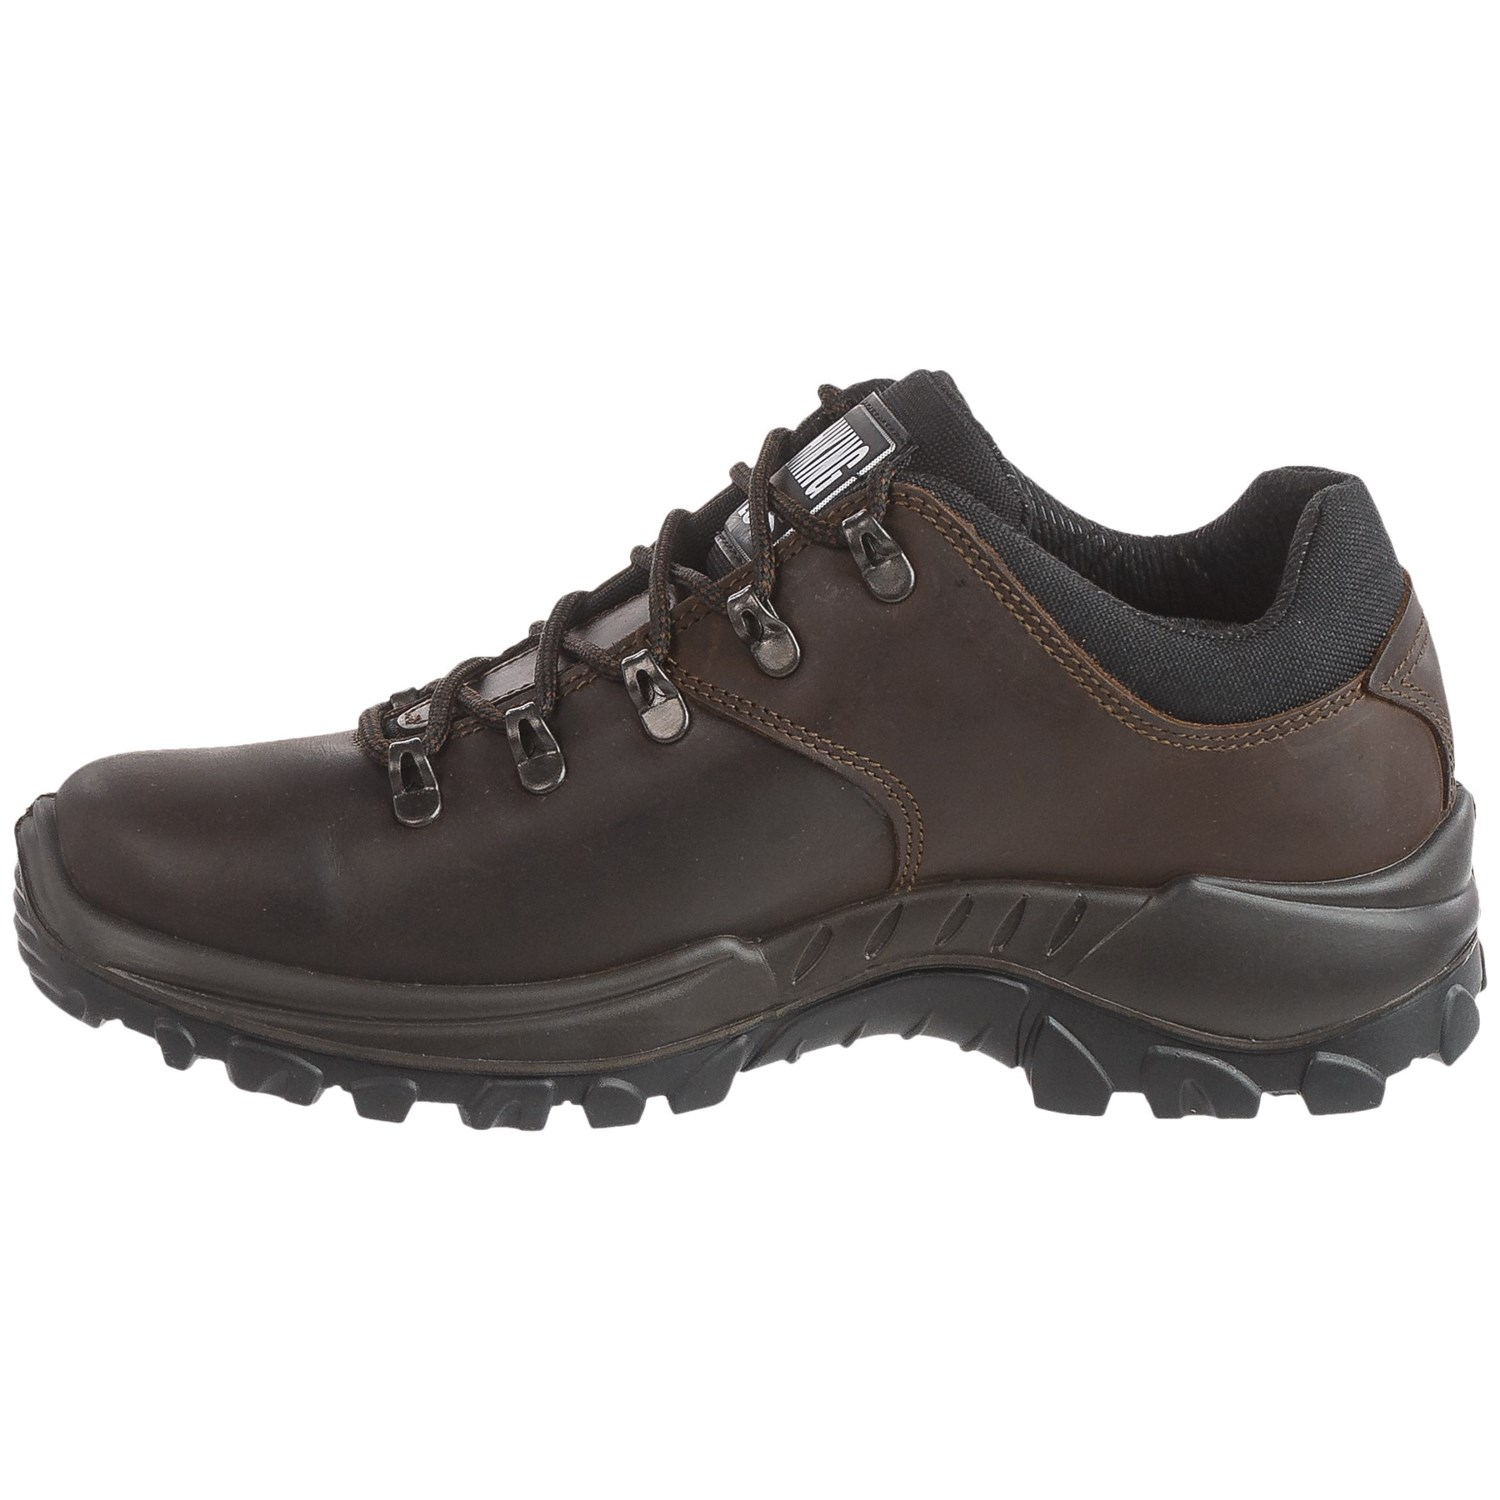 Grisport Sarentino Hiking Shoes Waterproof For Men